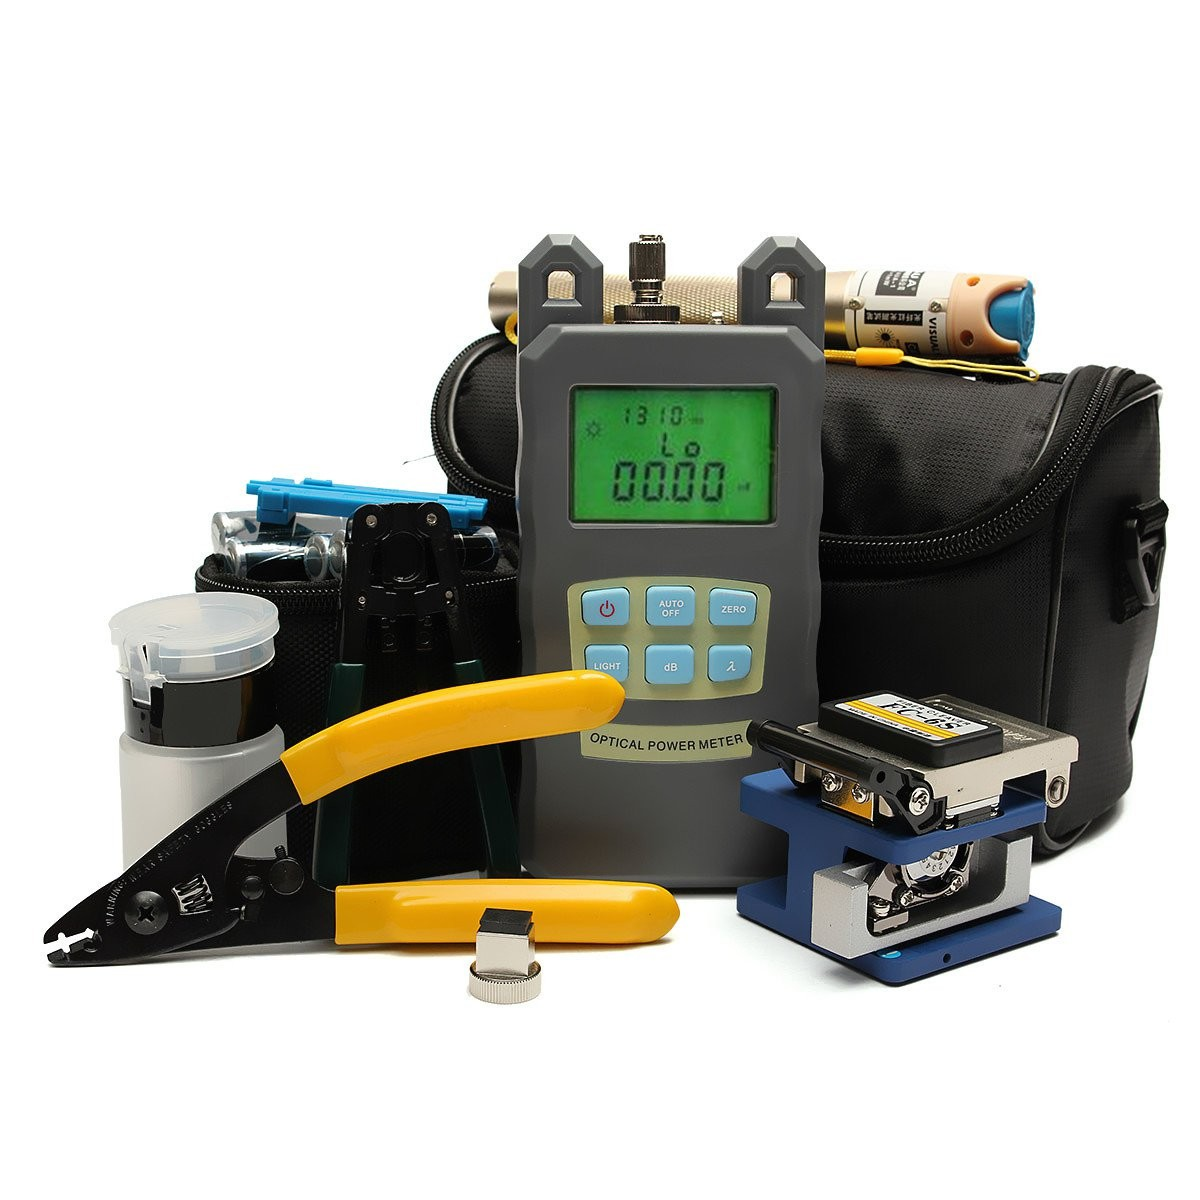 High Quality Fiber Optic FTTH Tool Kit with FC-6S Fiber Cleaver and High Precision Optical Power Meter Fiber Optic Stripper ray tricker optoelectronics and fiber optic technology